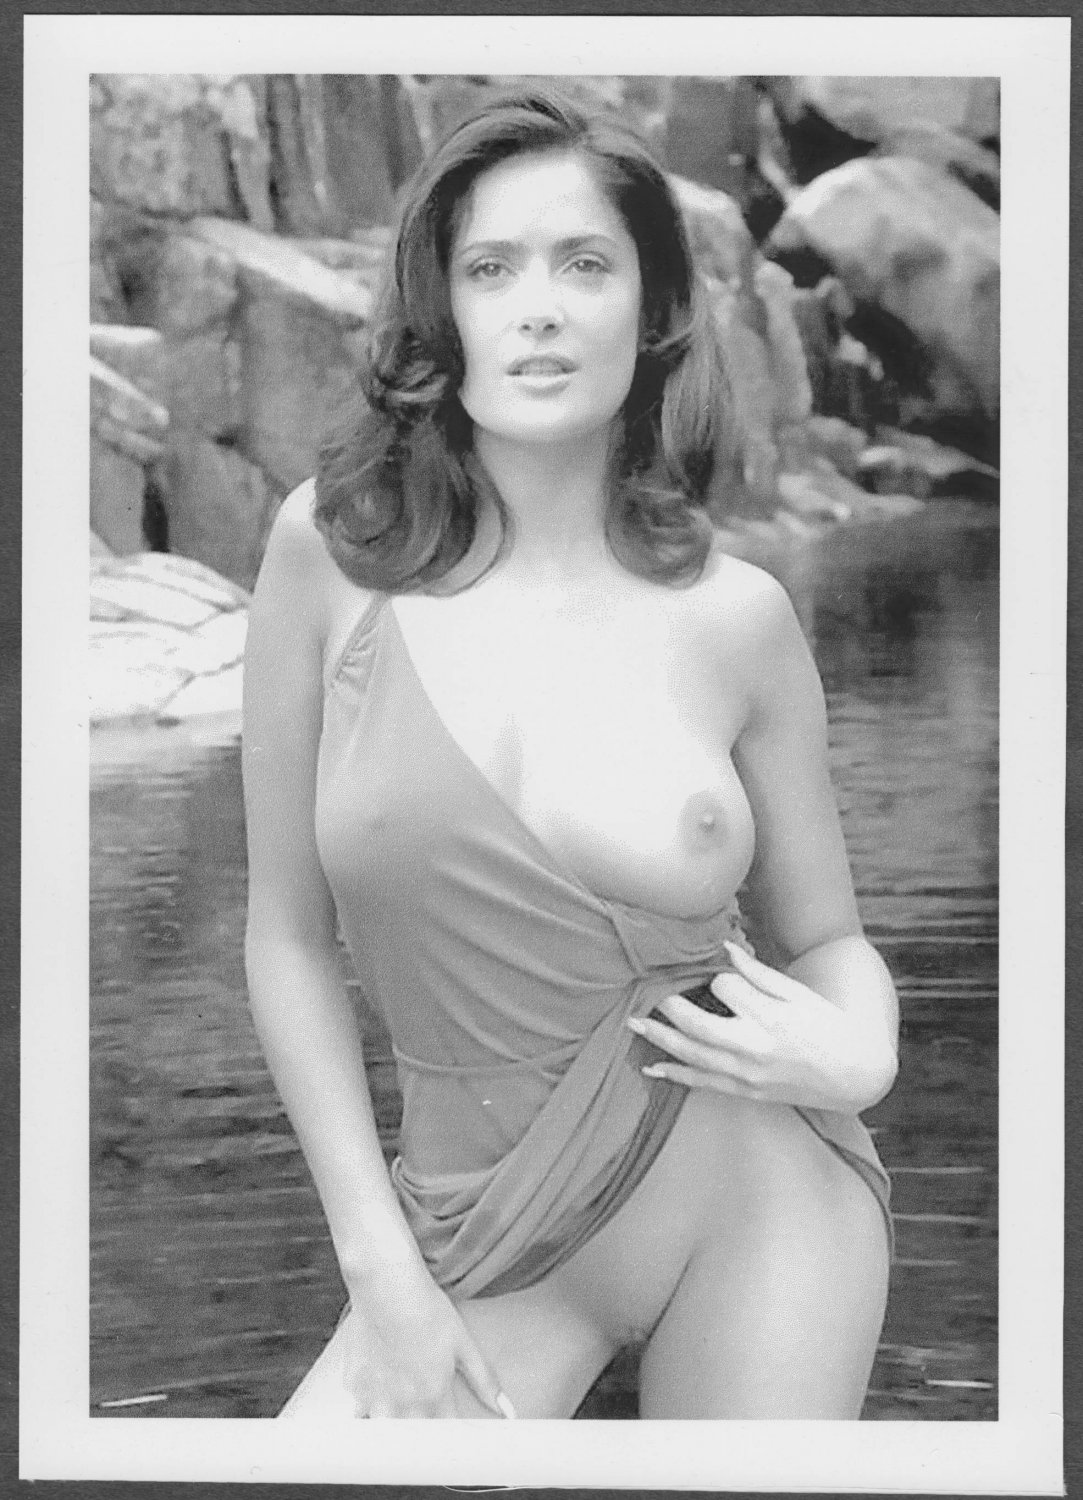 SALMA HAYEK TOTALLY NUDE BIG LARGE BREASTS SHAVED PUSSY NEW REPRINT 5 X 7 #4